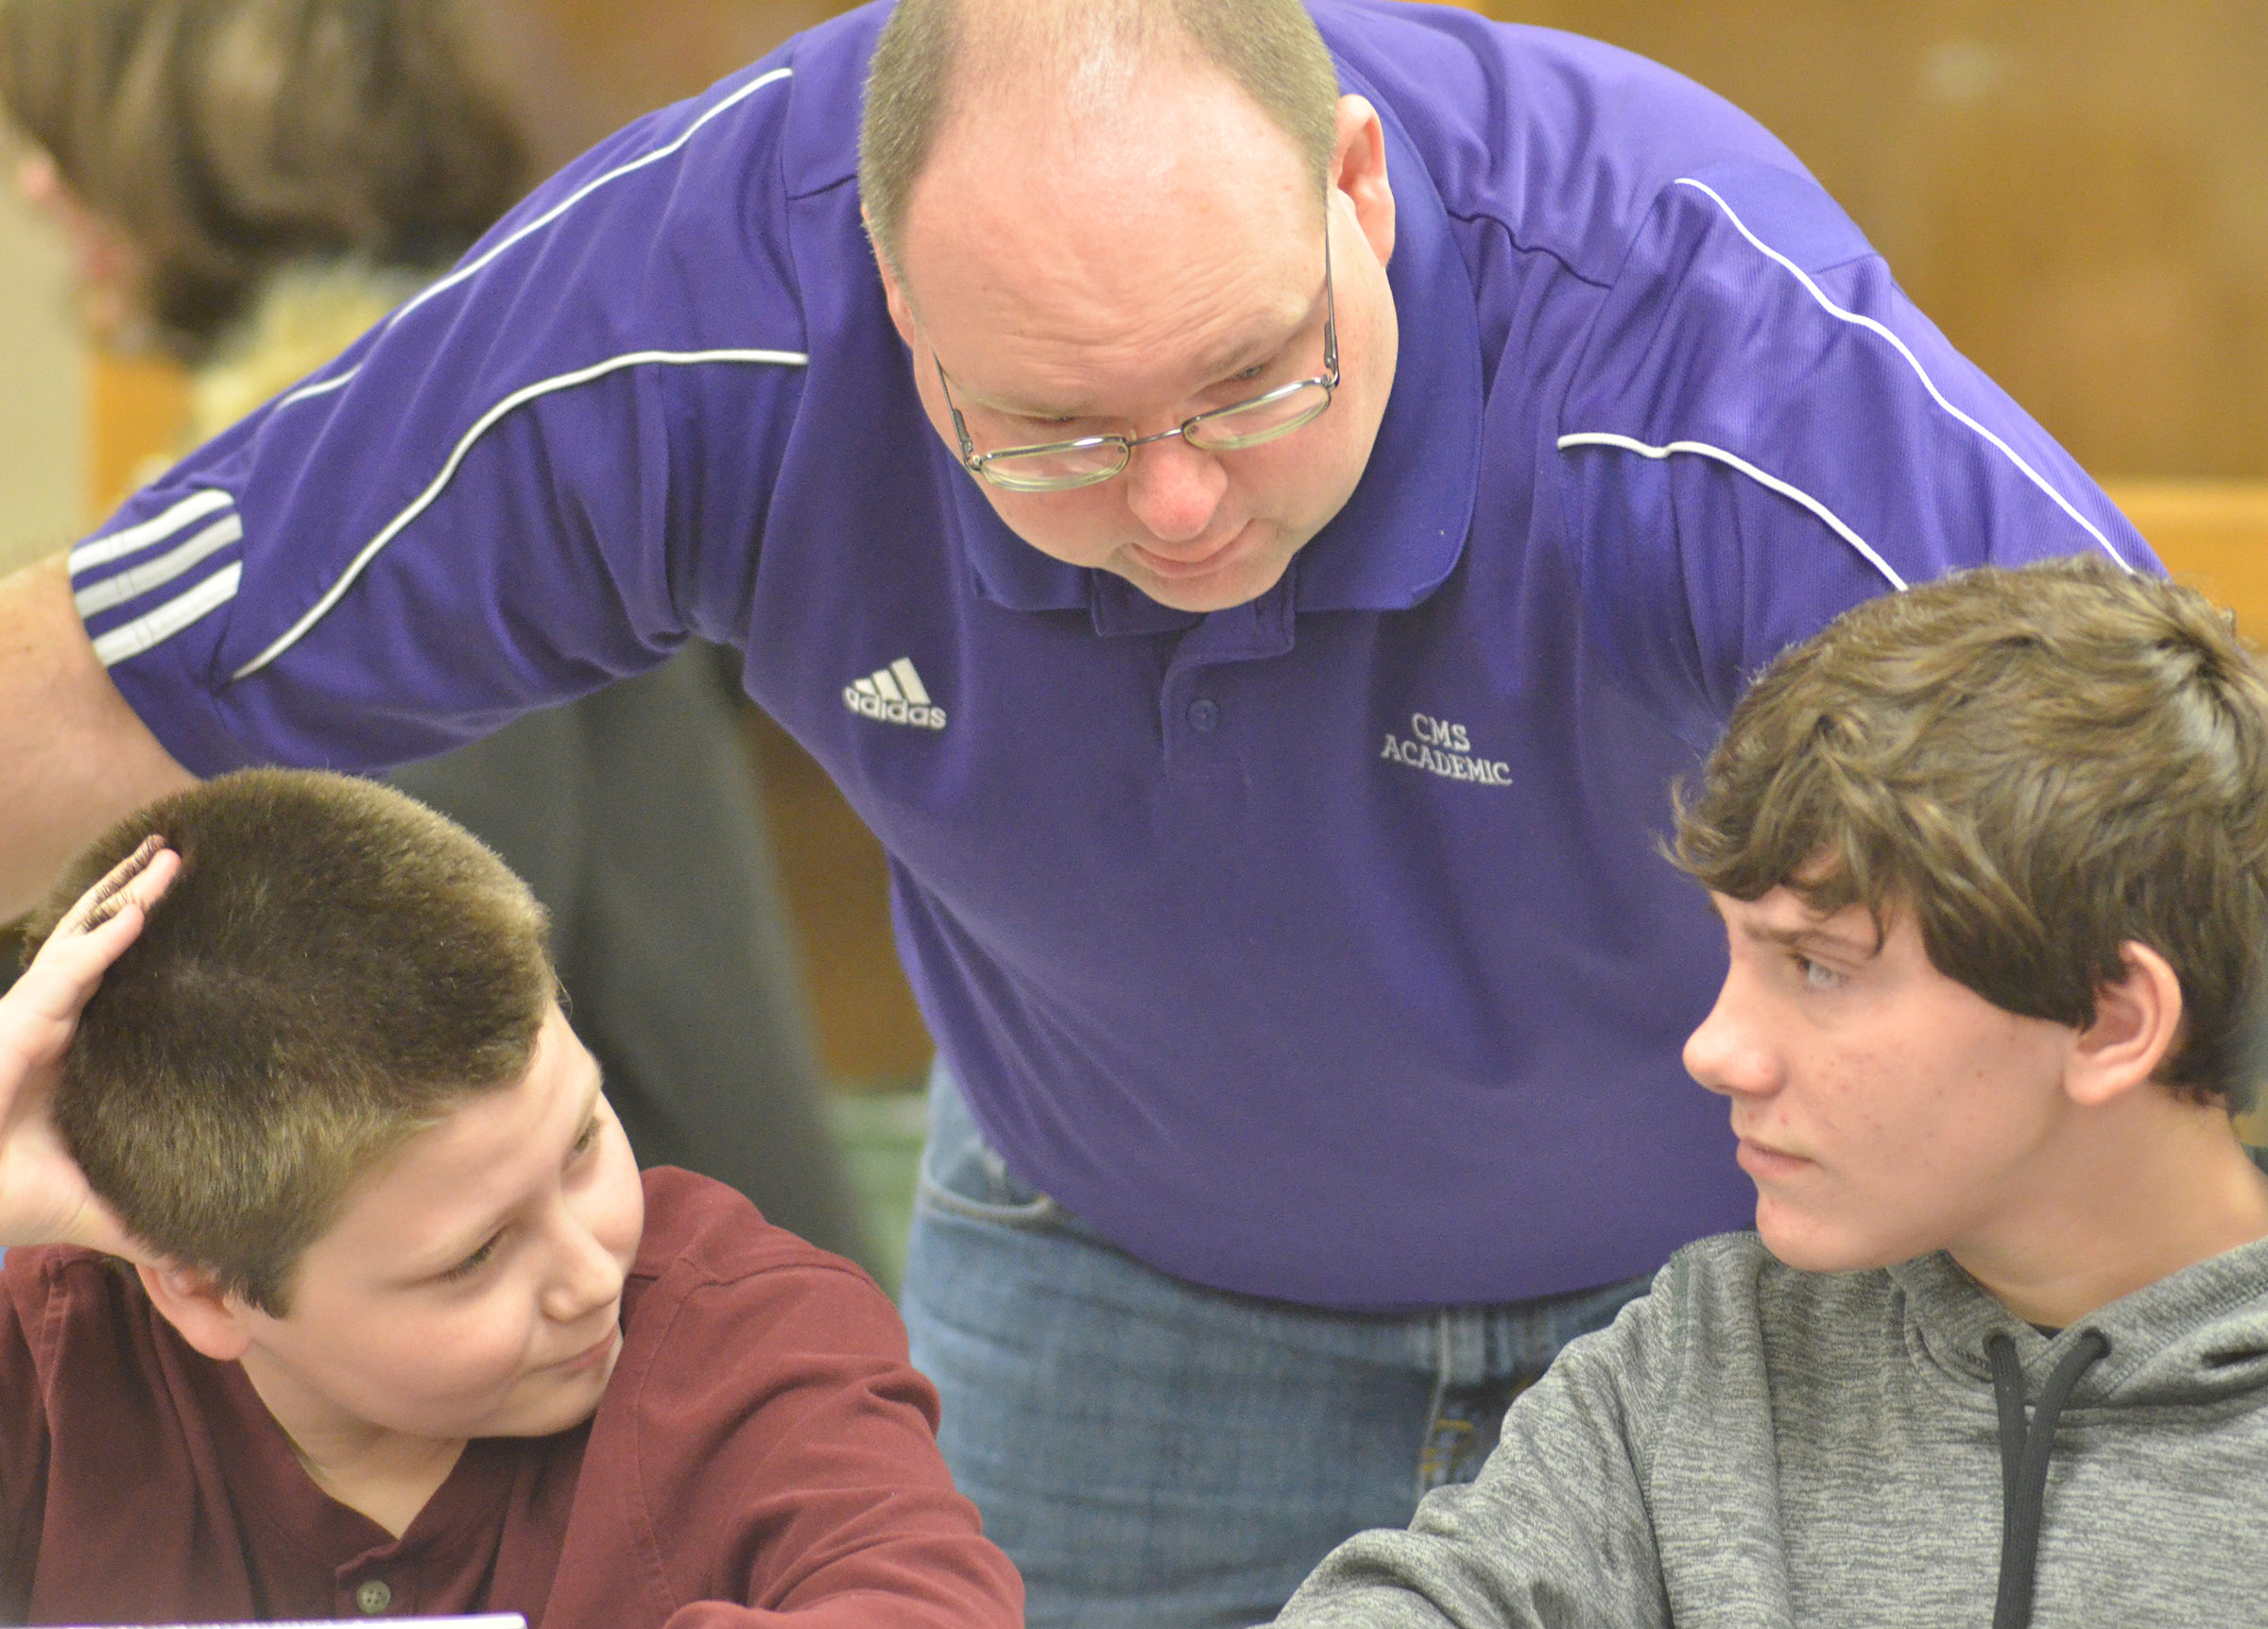 CMS academic teach coach Steven Gumm talks to seventh-graders Bailey Stearman, at left, and Peyton Dabney before a quick recall match.